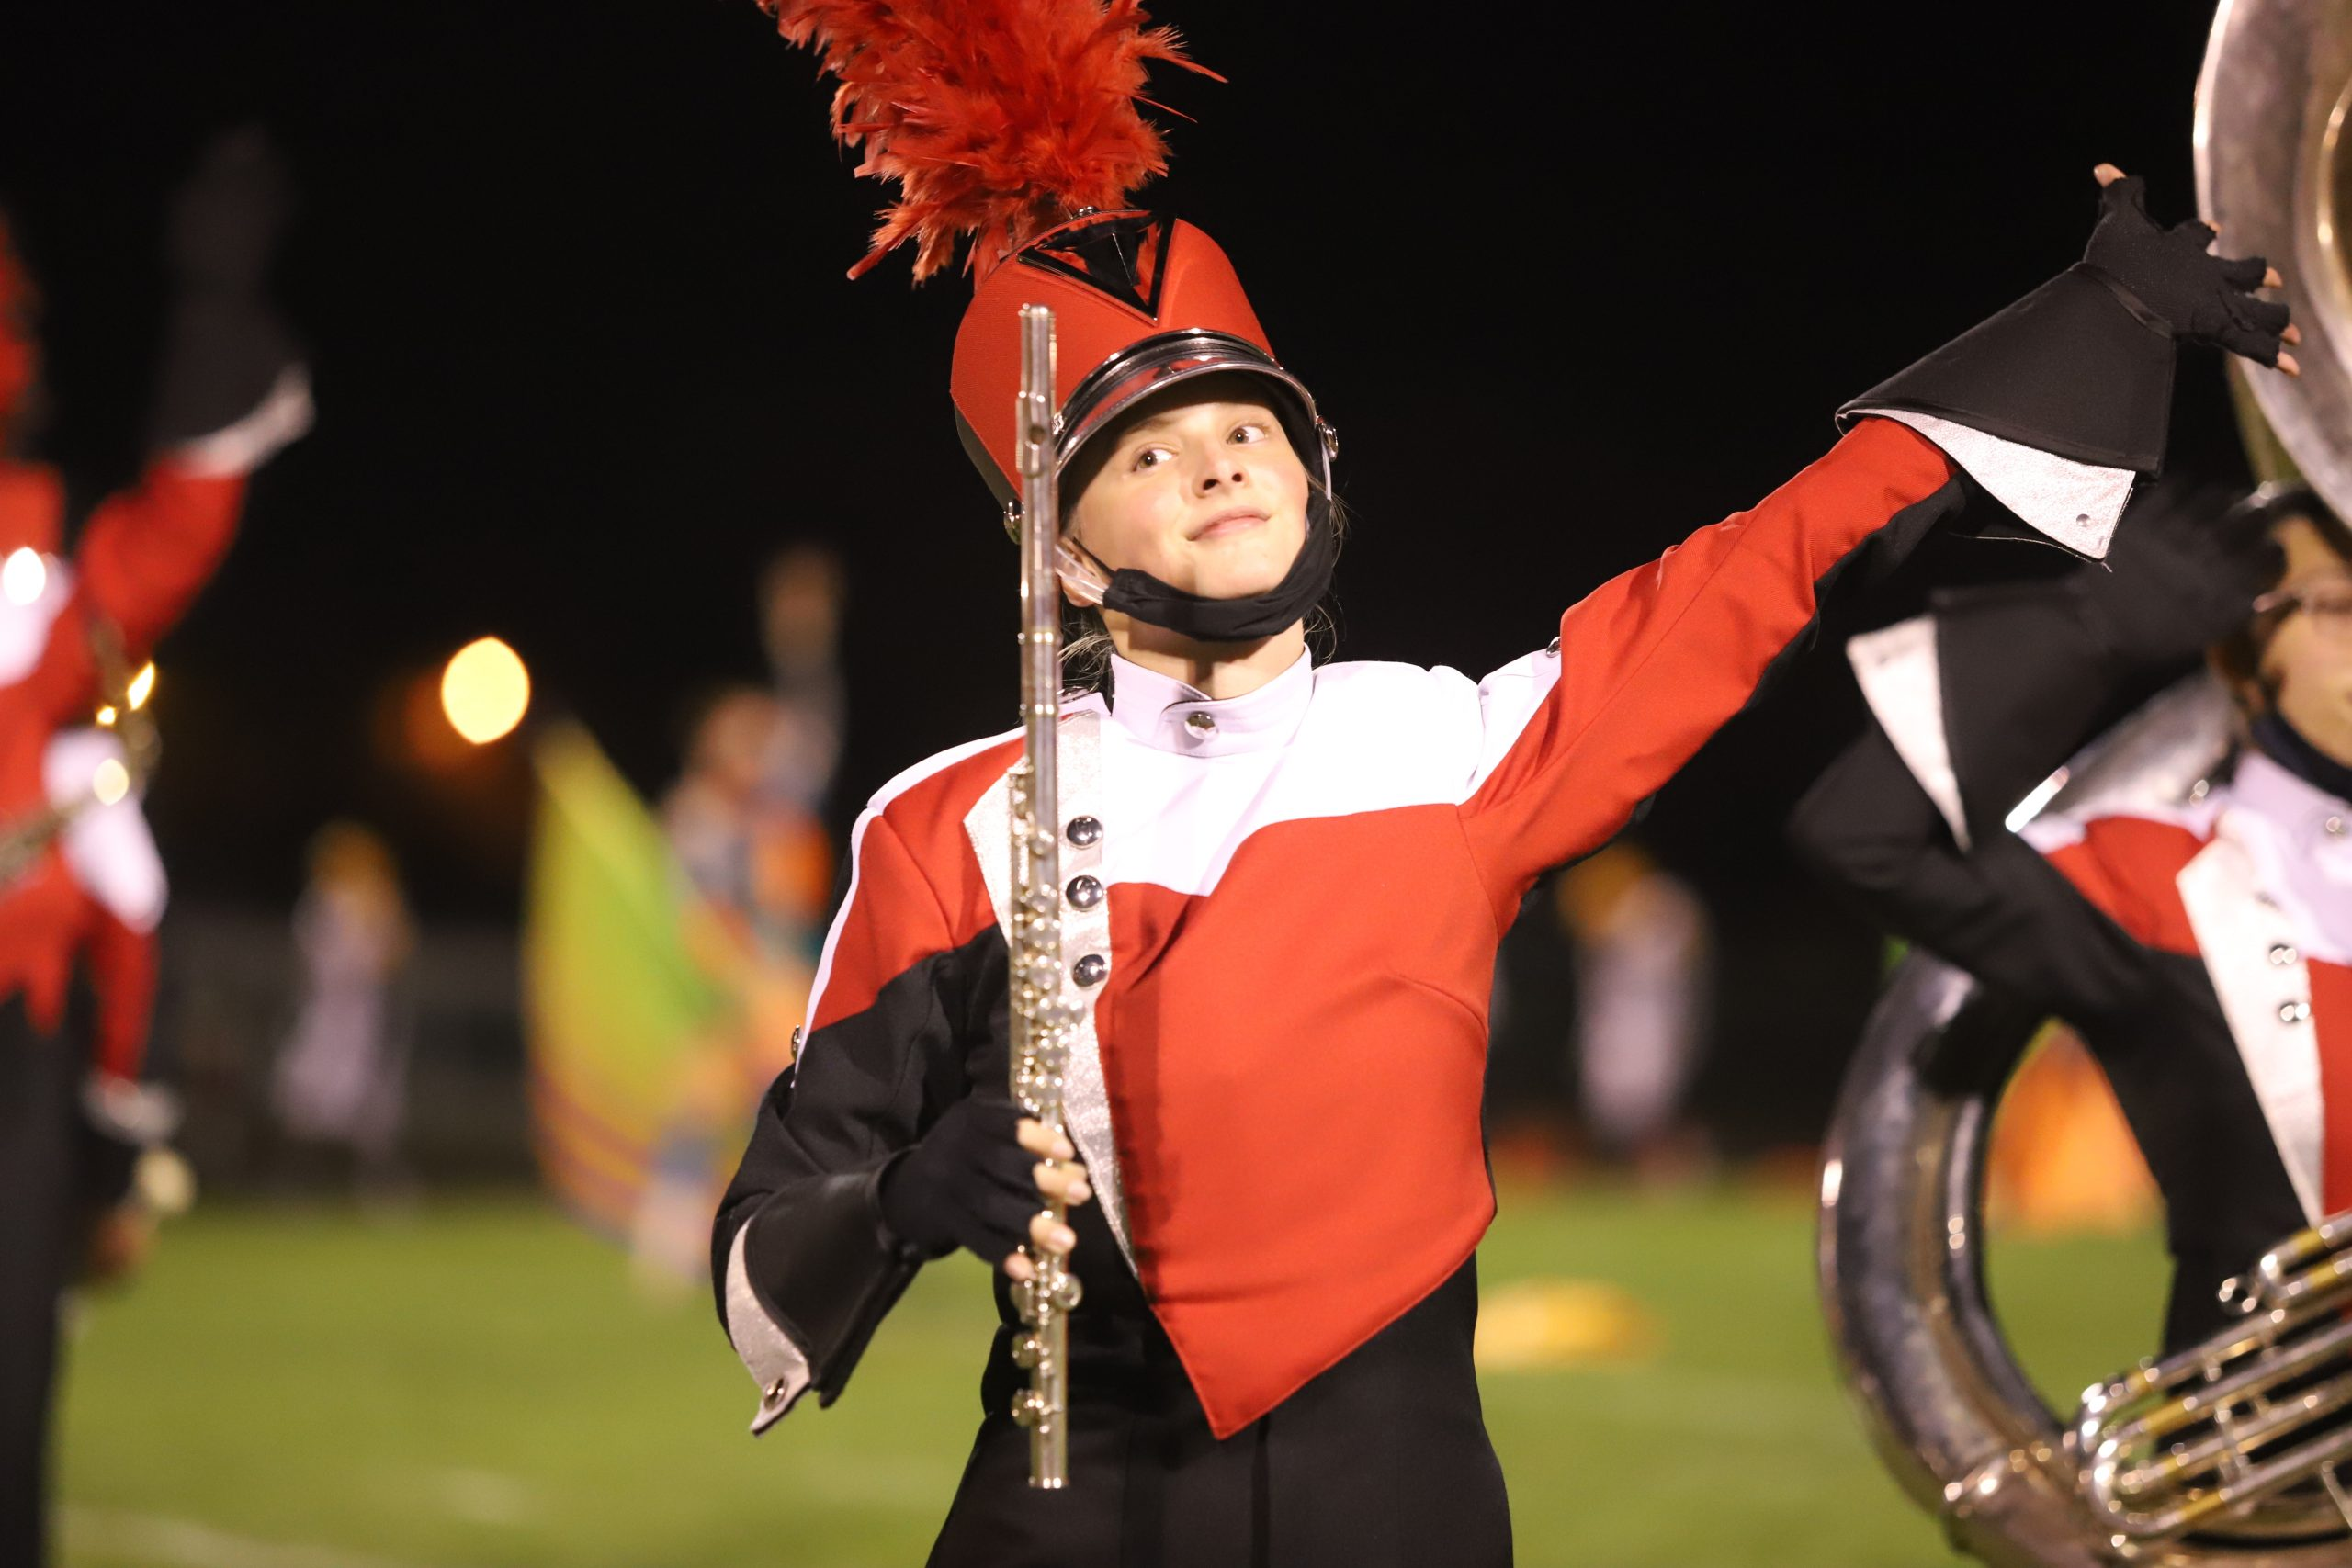 Grand Blanc Bobcat Marching Band